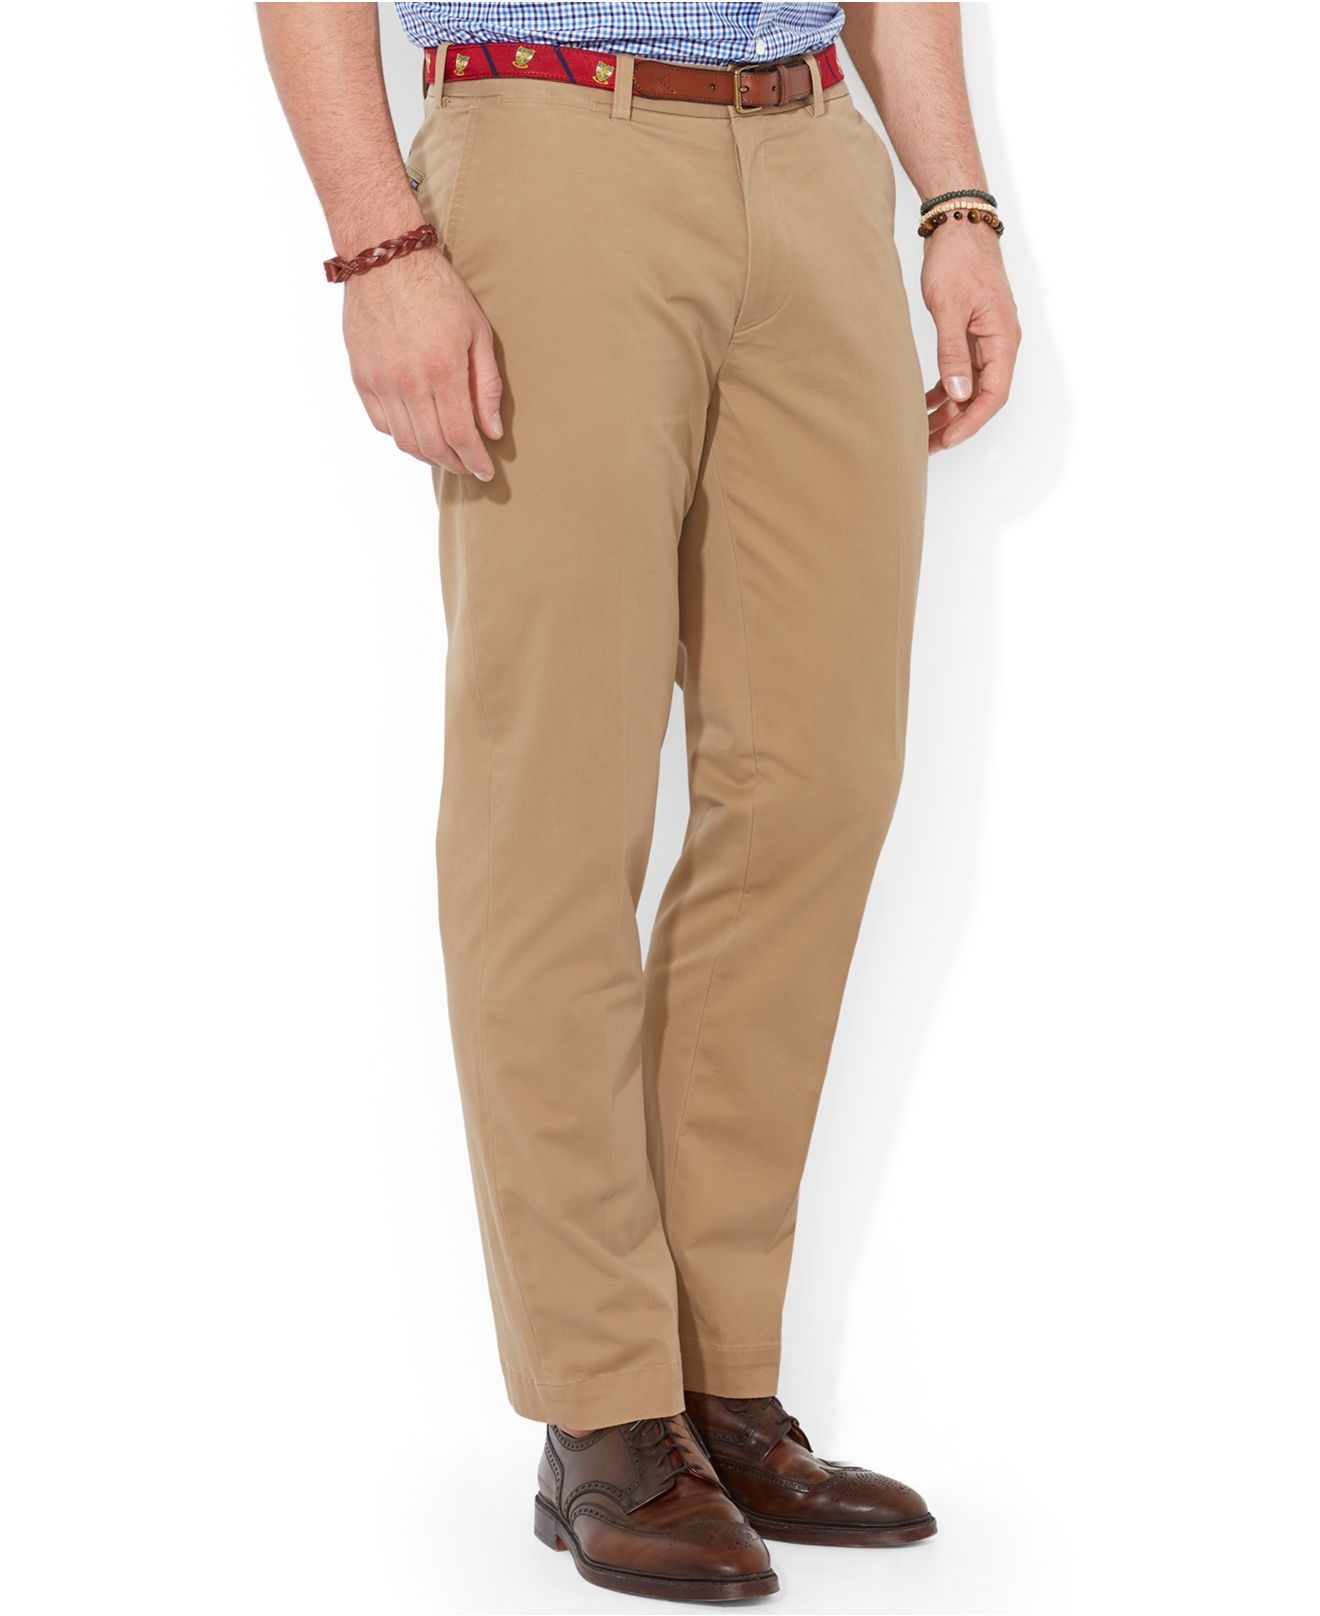 dd25a3f6251 Lyst - Polo Ralph Lauren Big And Tall Stretch Twill Suffield Pants ...